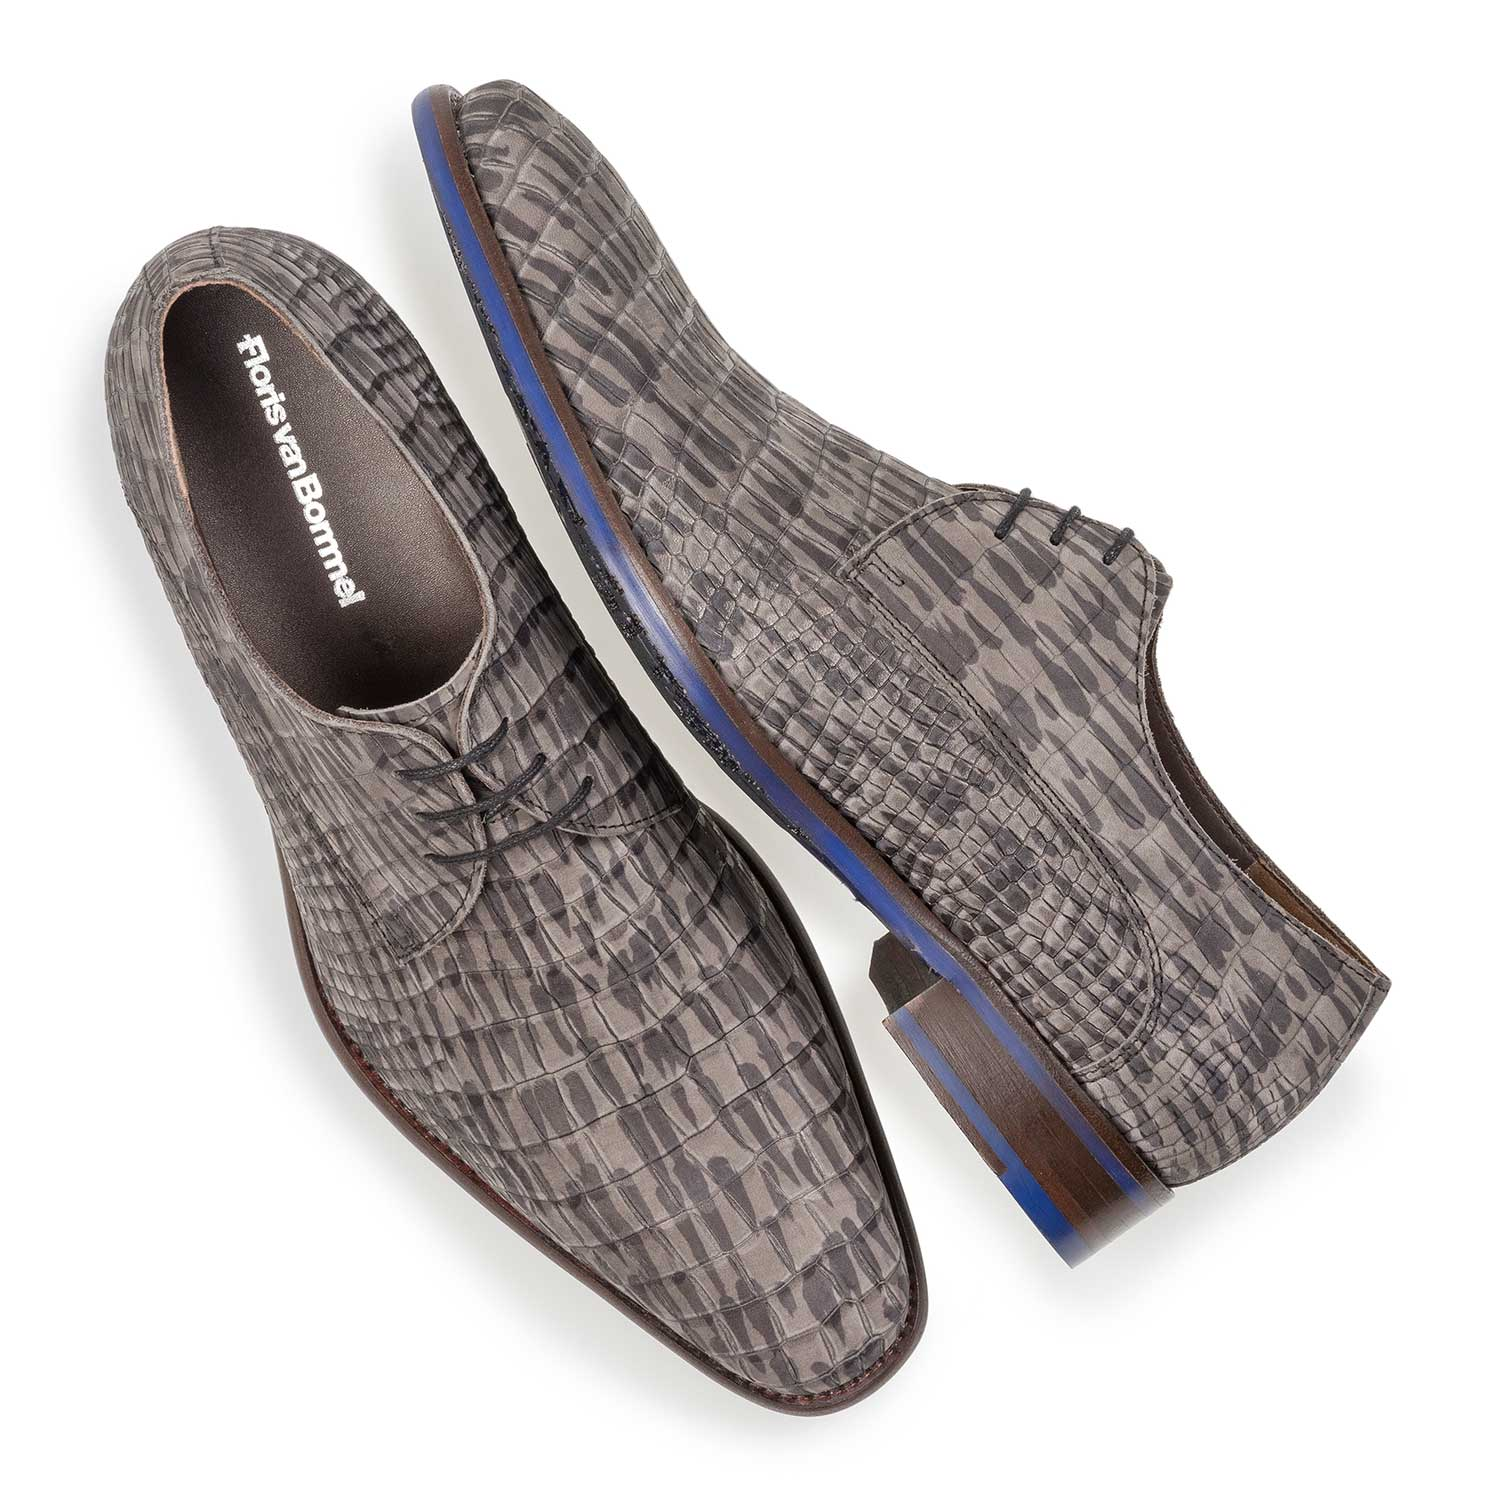 18159/12 - Grey nubuck leather lace shoe with croco print